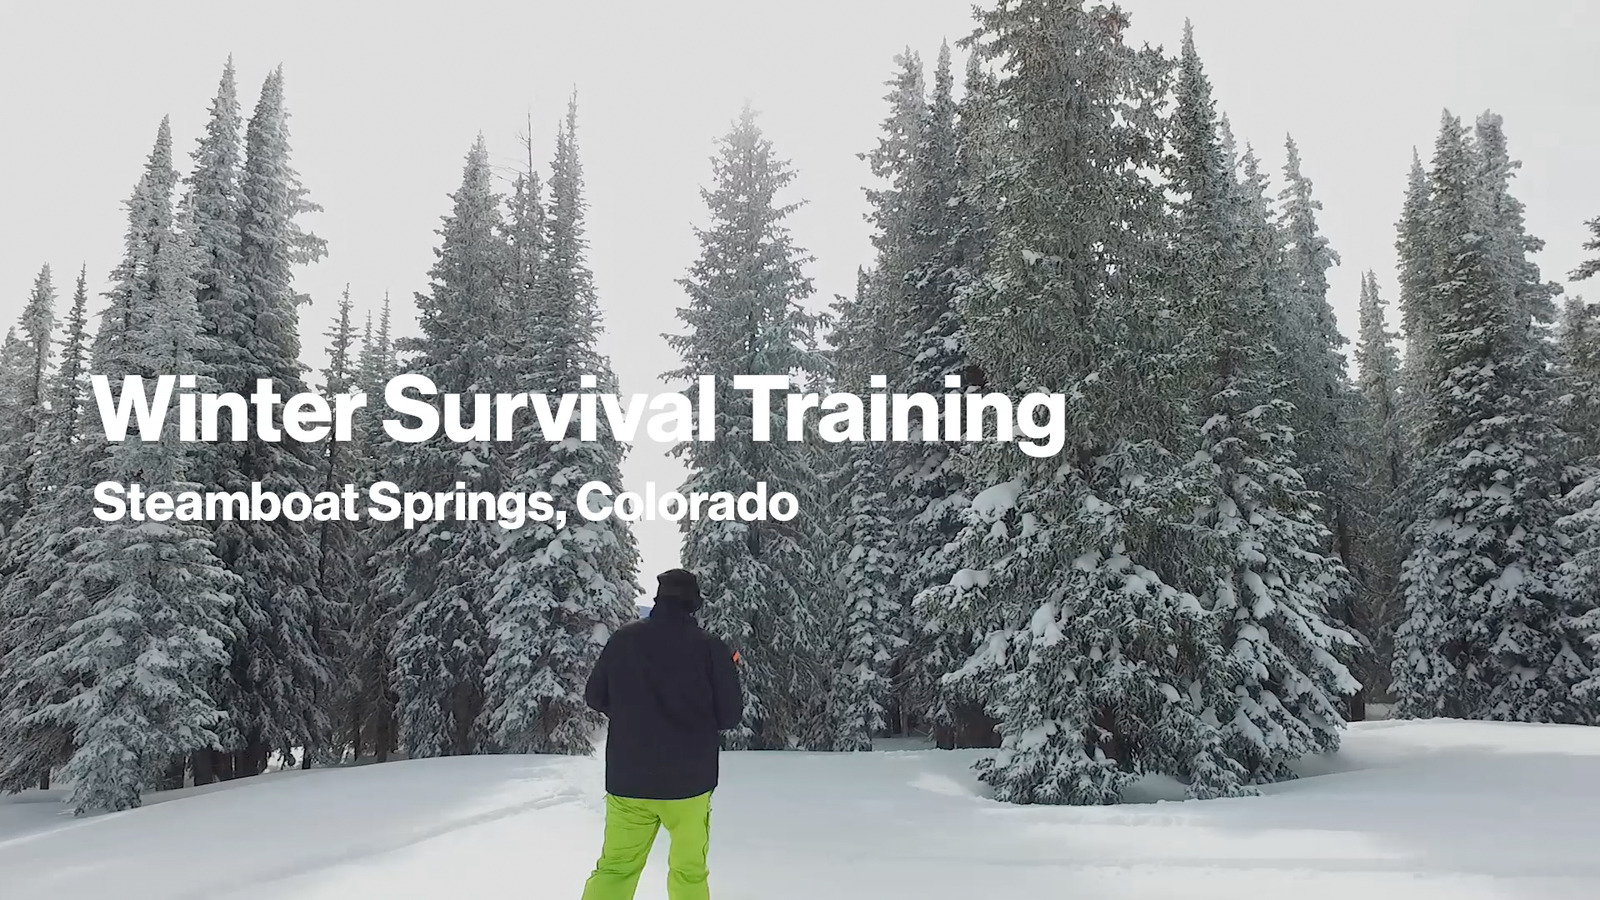 Winter Survival Training - Best for a Good Reason Video